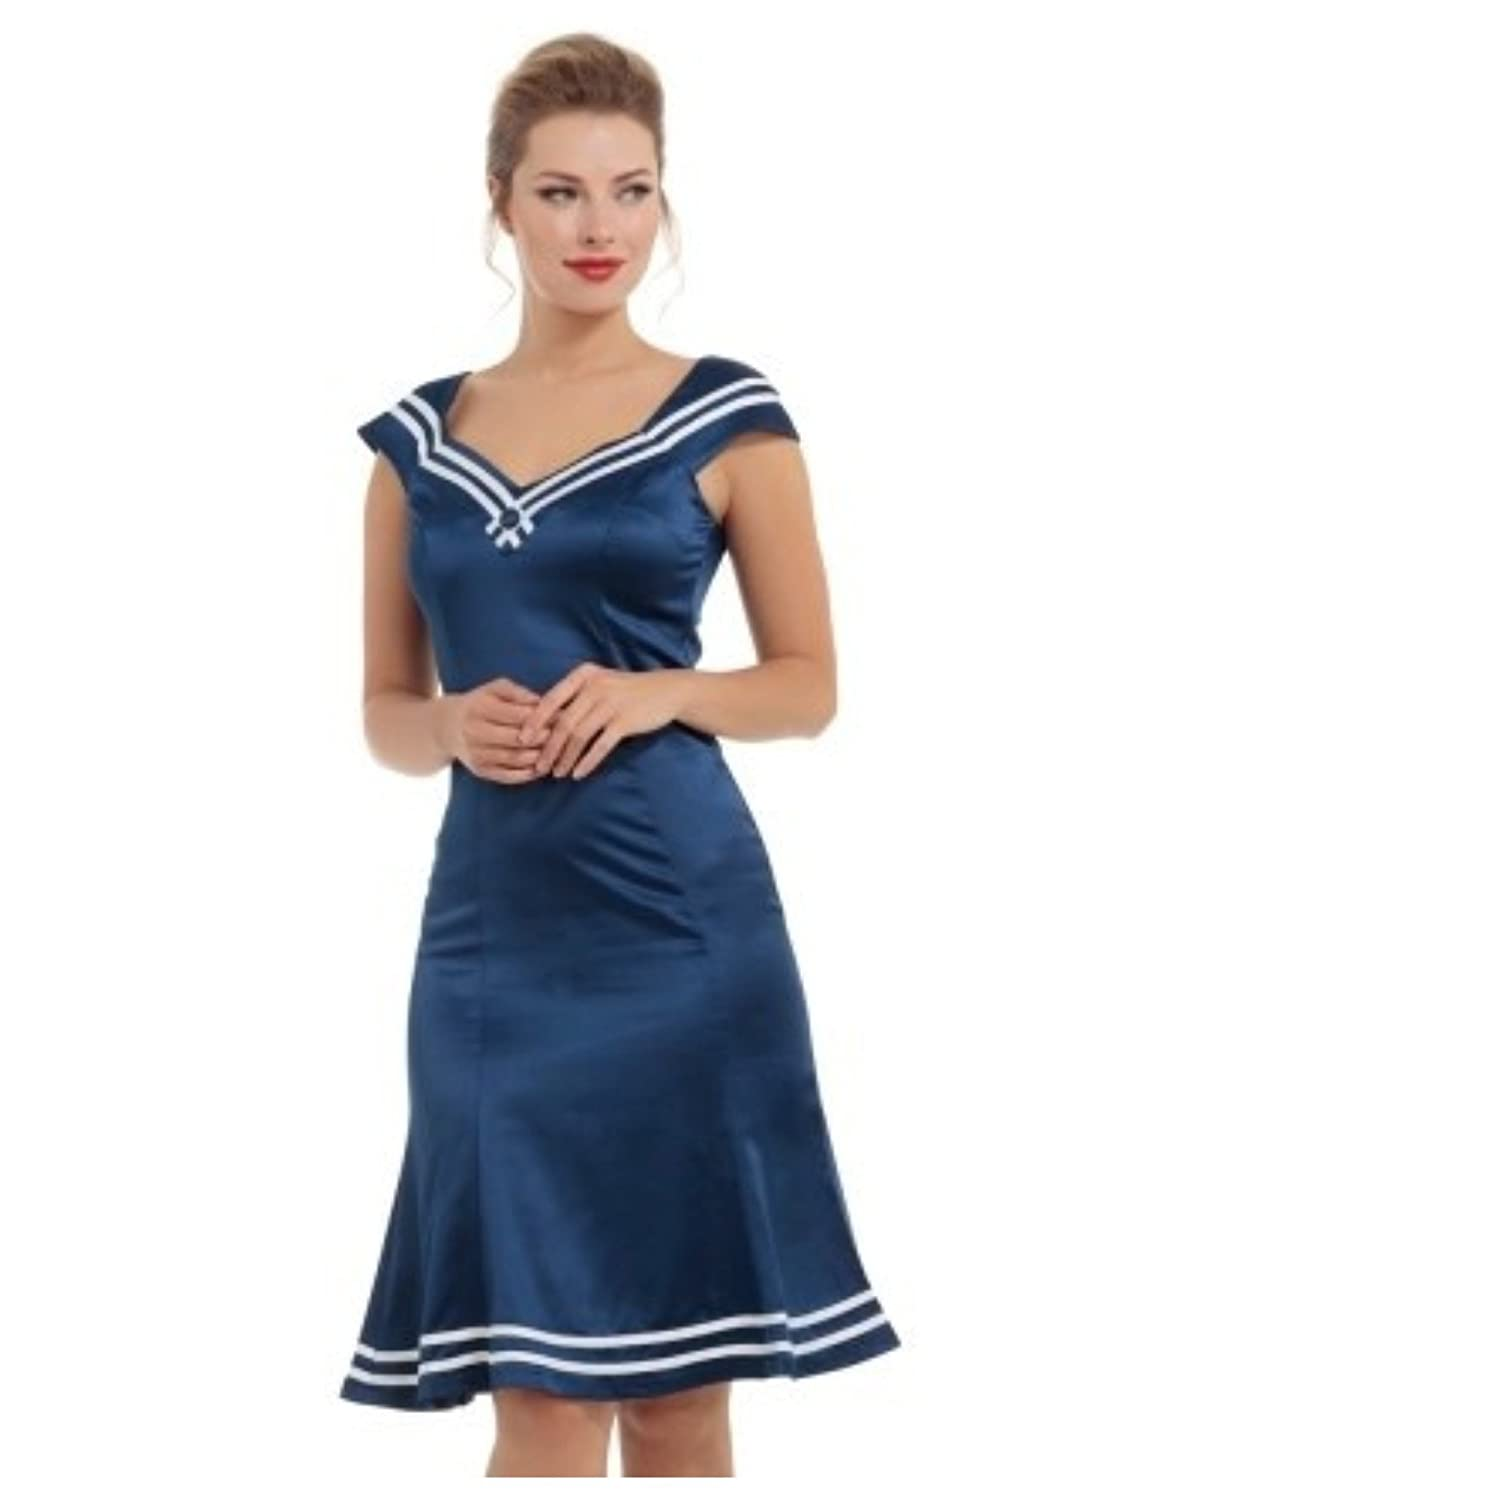 Vintage Cruise Outfits, Vacation Clothing Voodoo Vixen Isla Silk Like Nautical Dress �32.99 AT vintagedancer.com